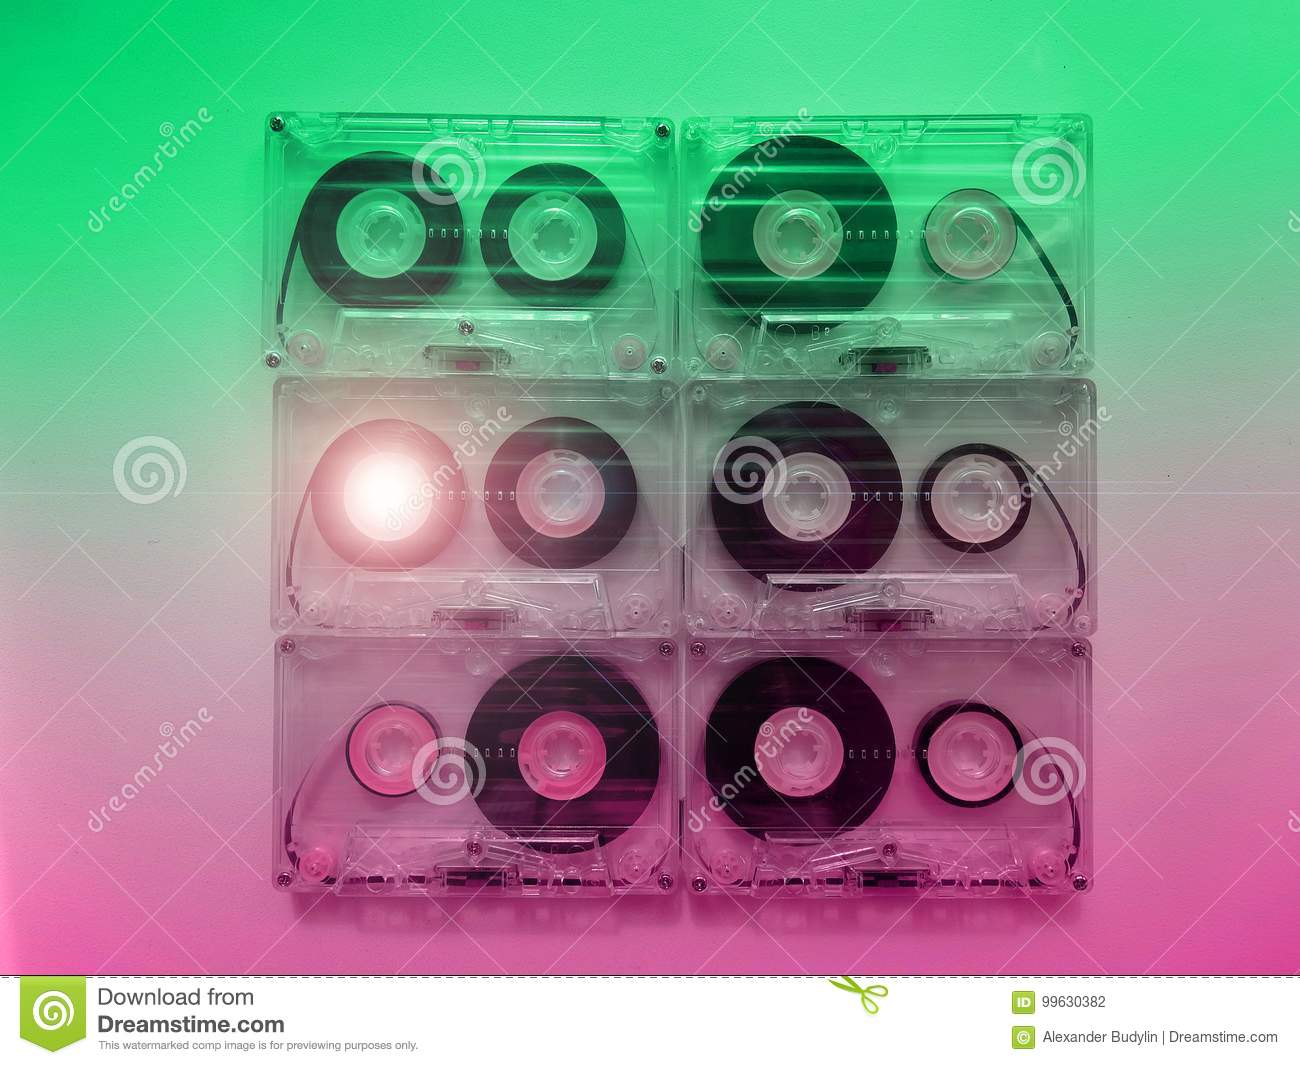 Download Wallpaper Music Tape - audio-cassettes-recorder-s-retro-vintage-old-music-time-generation-tape-wallpaper-background-style-nostalgia-song-neon-cover-99630382  Pictures_795245.jpg